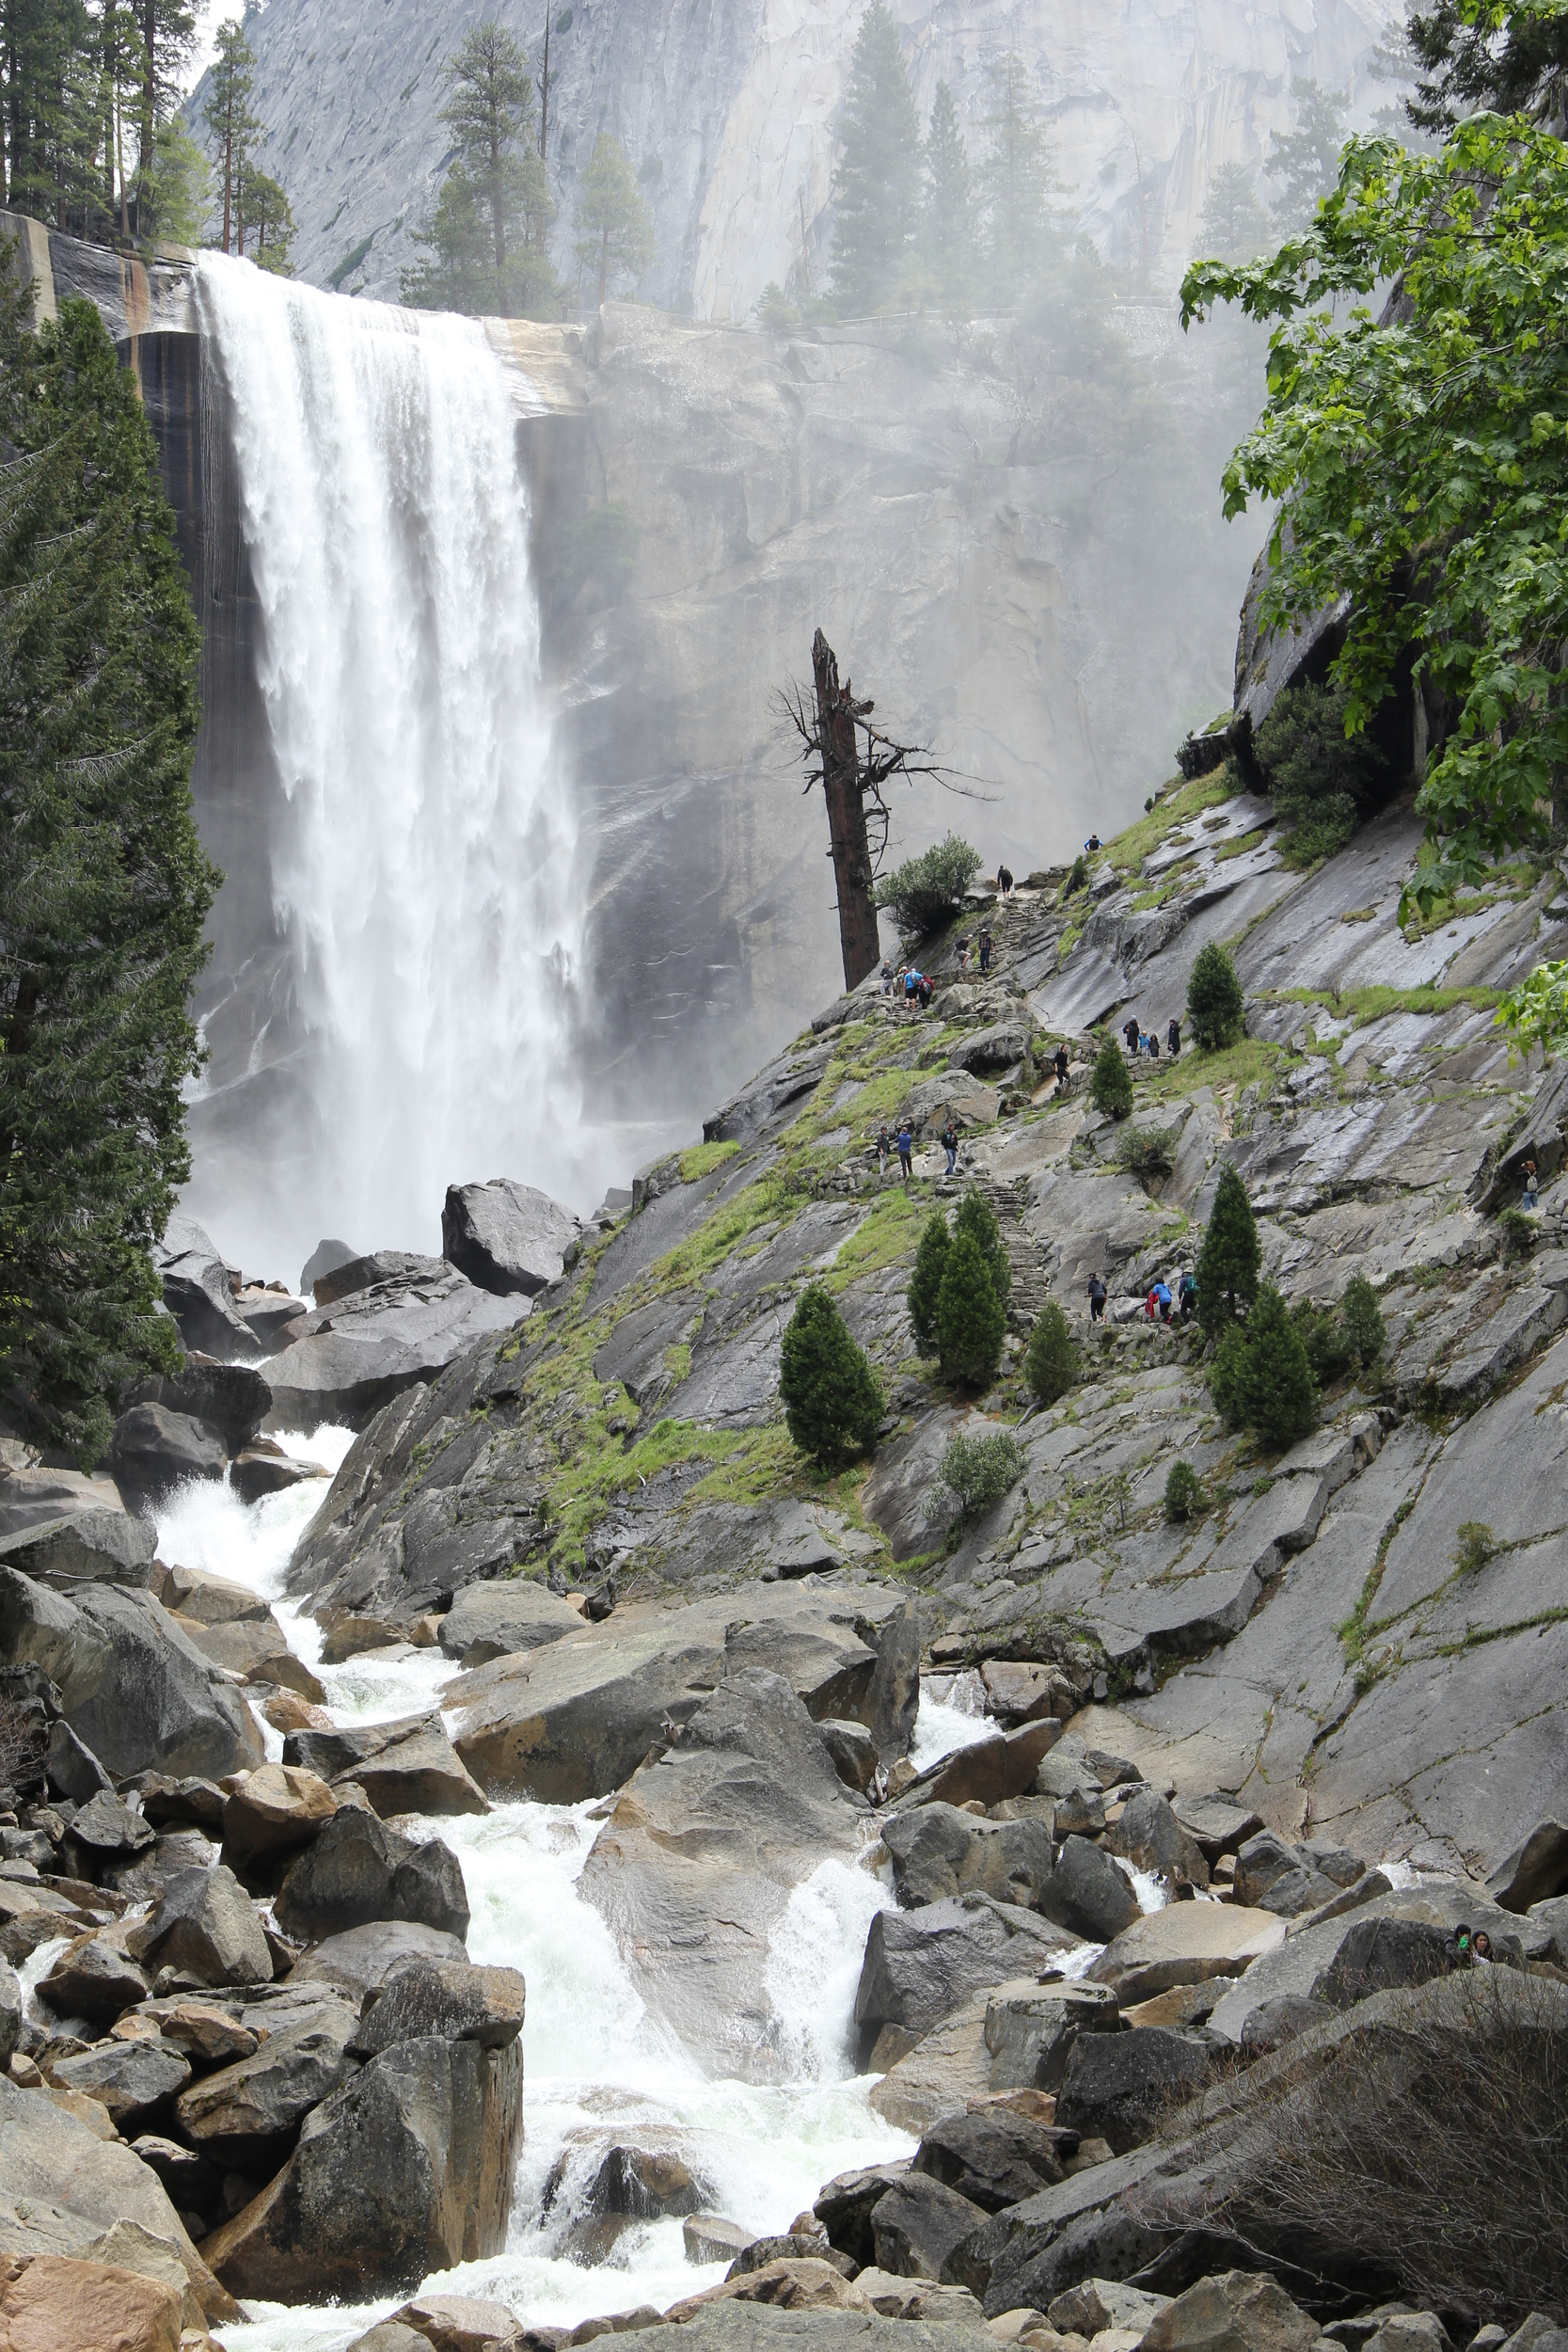 Vernal Falls via Mist Trail in May